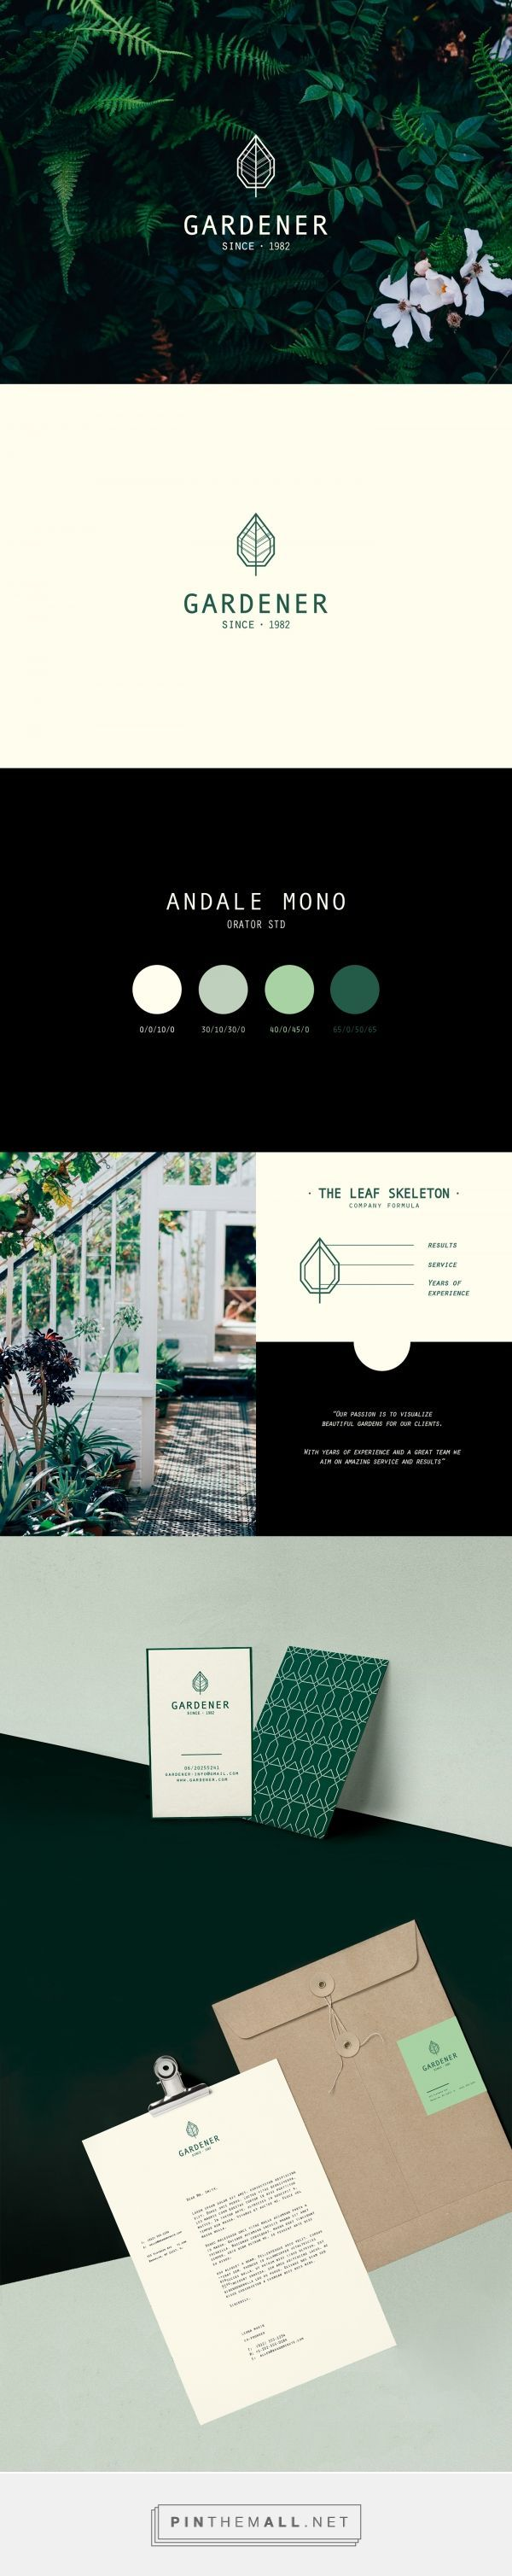 The Gardener Landscaping Company Branding by Lioness Graphic Design | Fivestar Branding Agency – Design and Branding Agency & Curated Inspiration Gallery